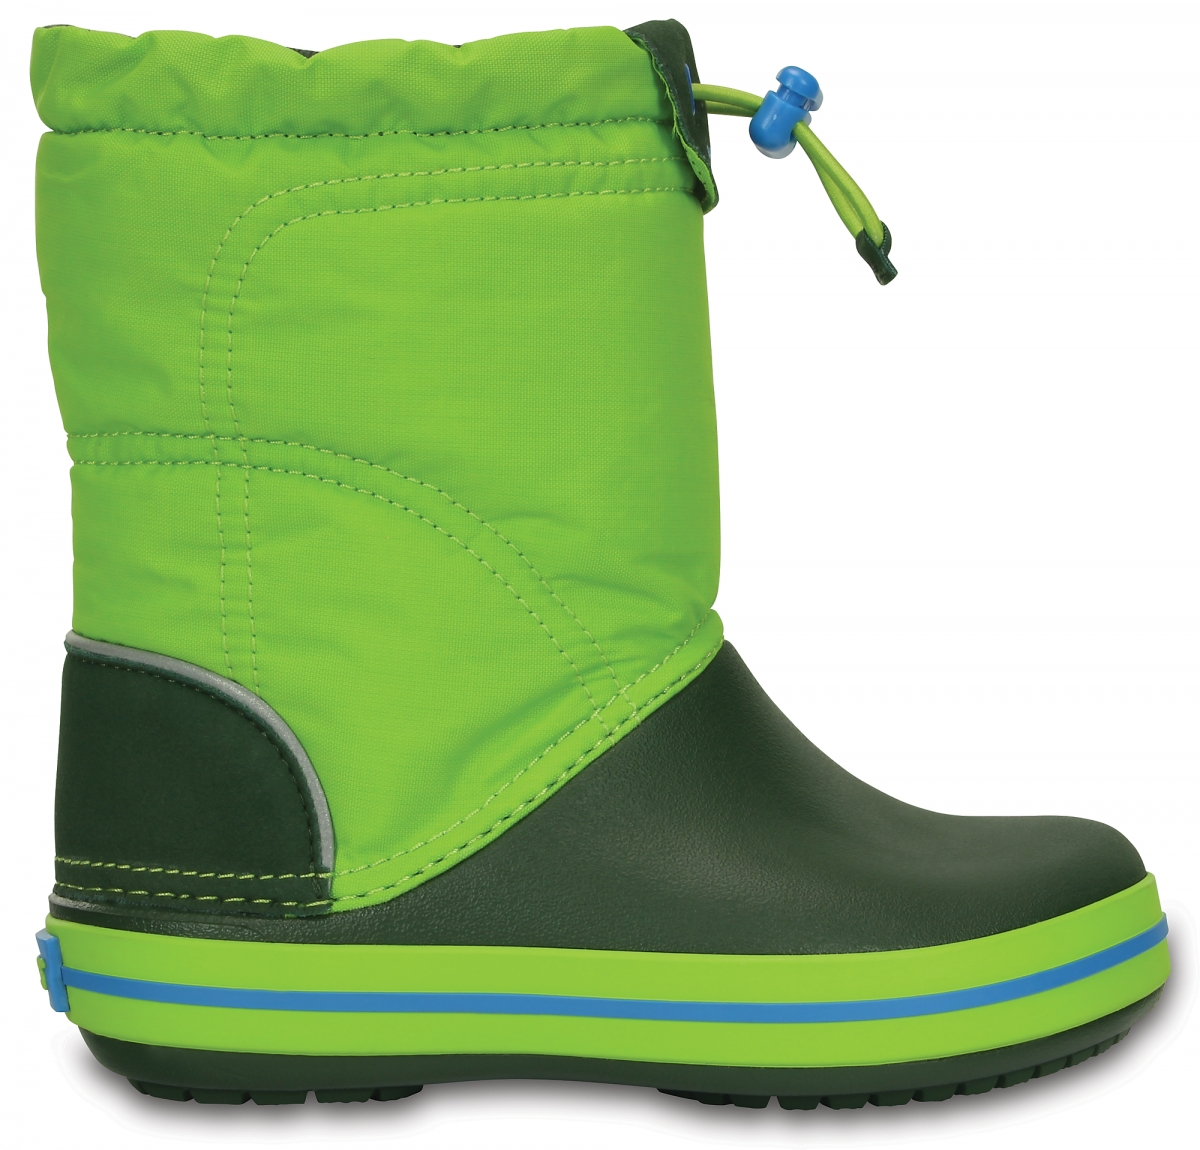 Crocs Crocband LodgePoint Boot Kids - Lime/Forest Green, C13 (30-31)